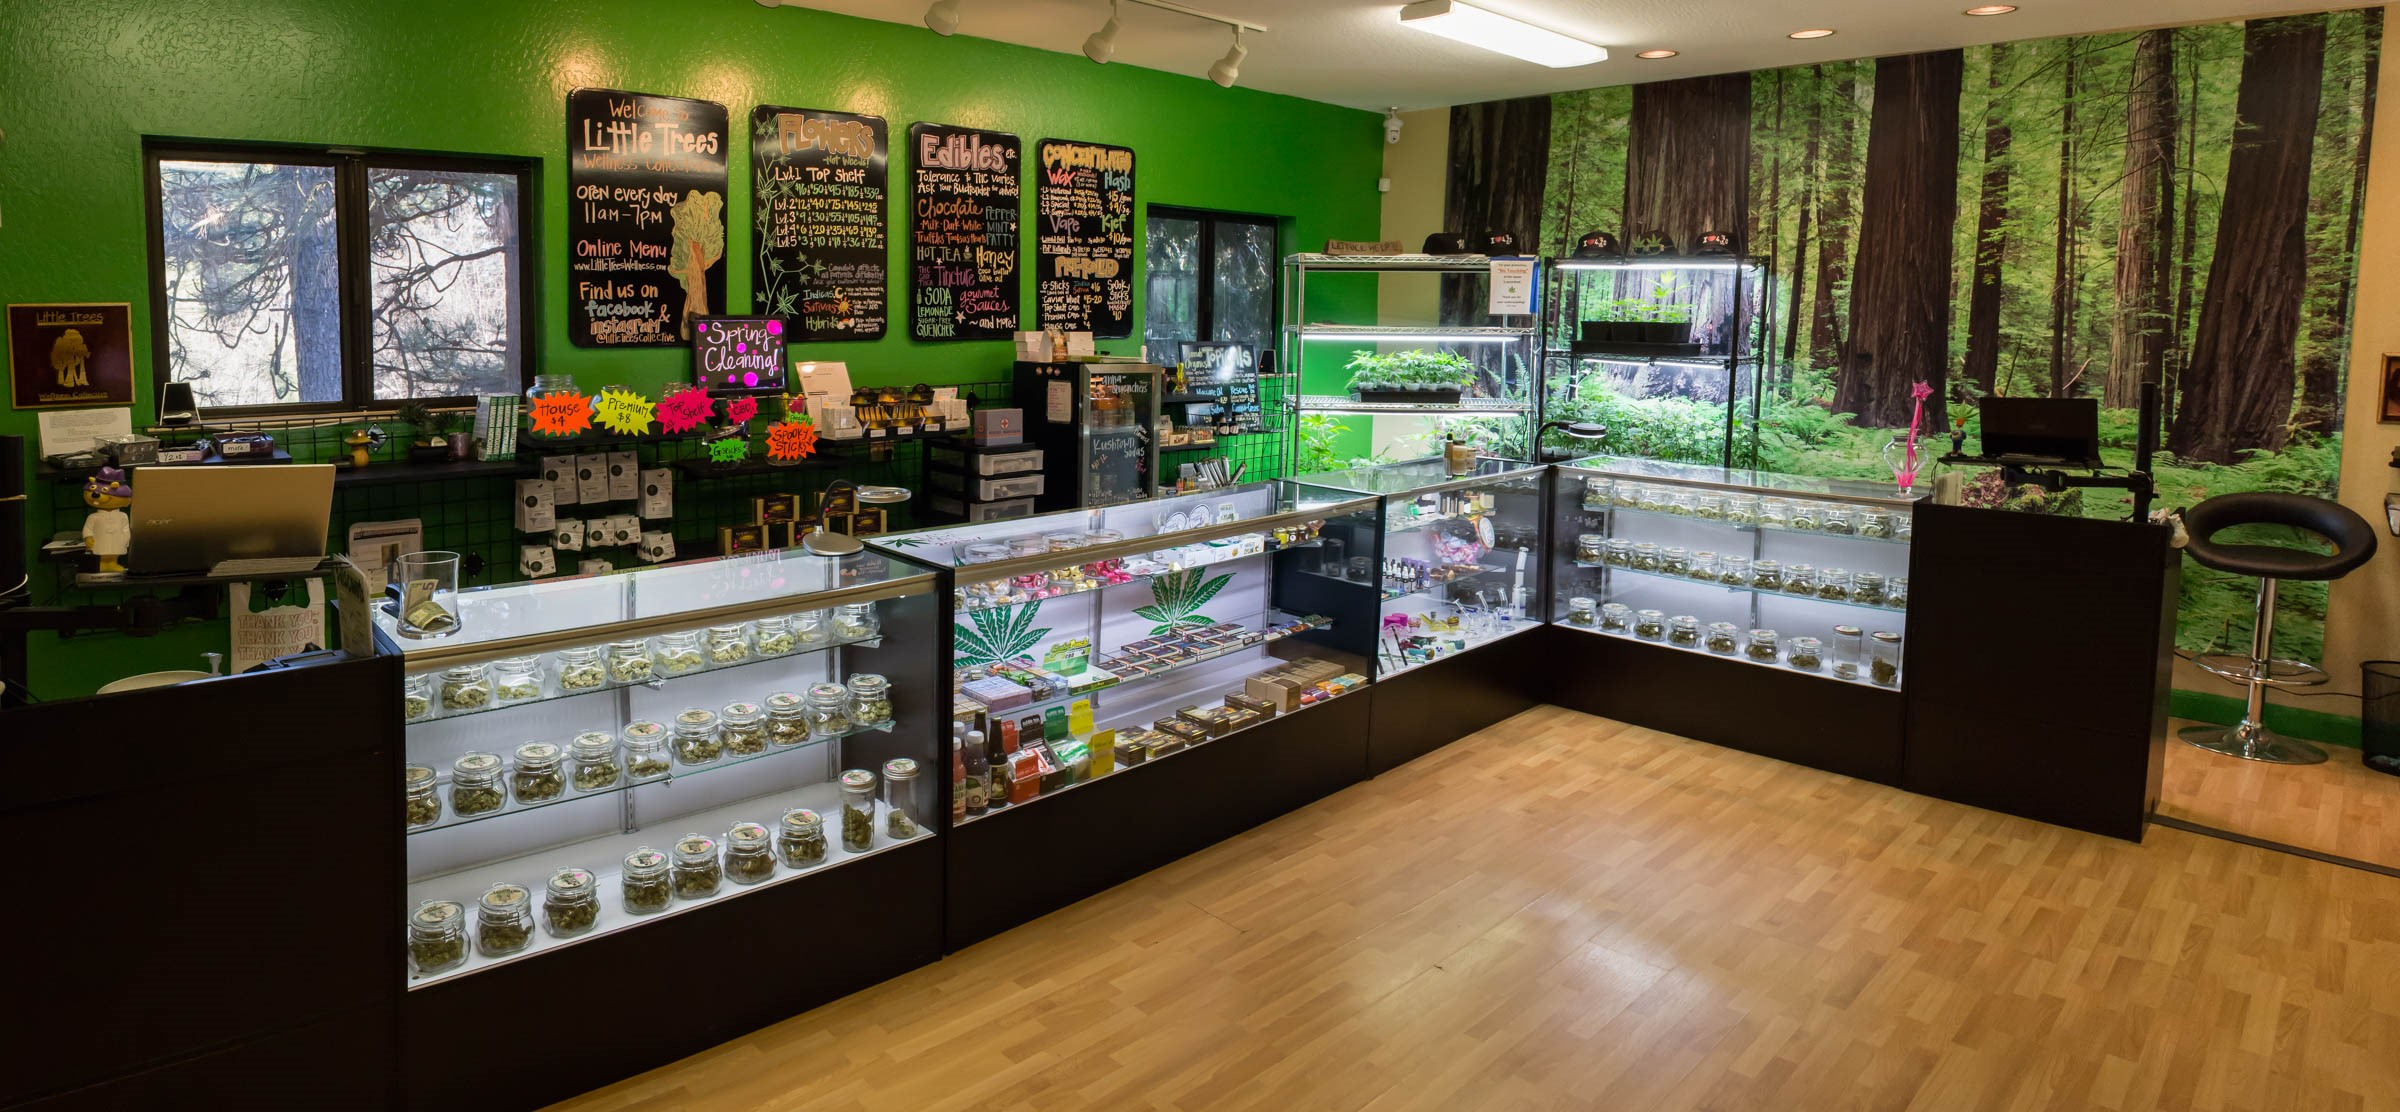 Little Trees medical marijuana dispensary in Arnold, California